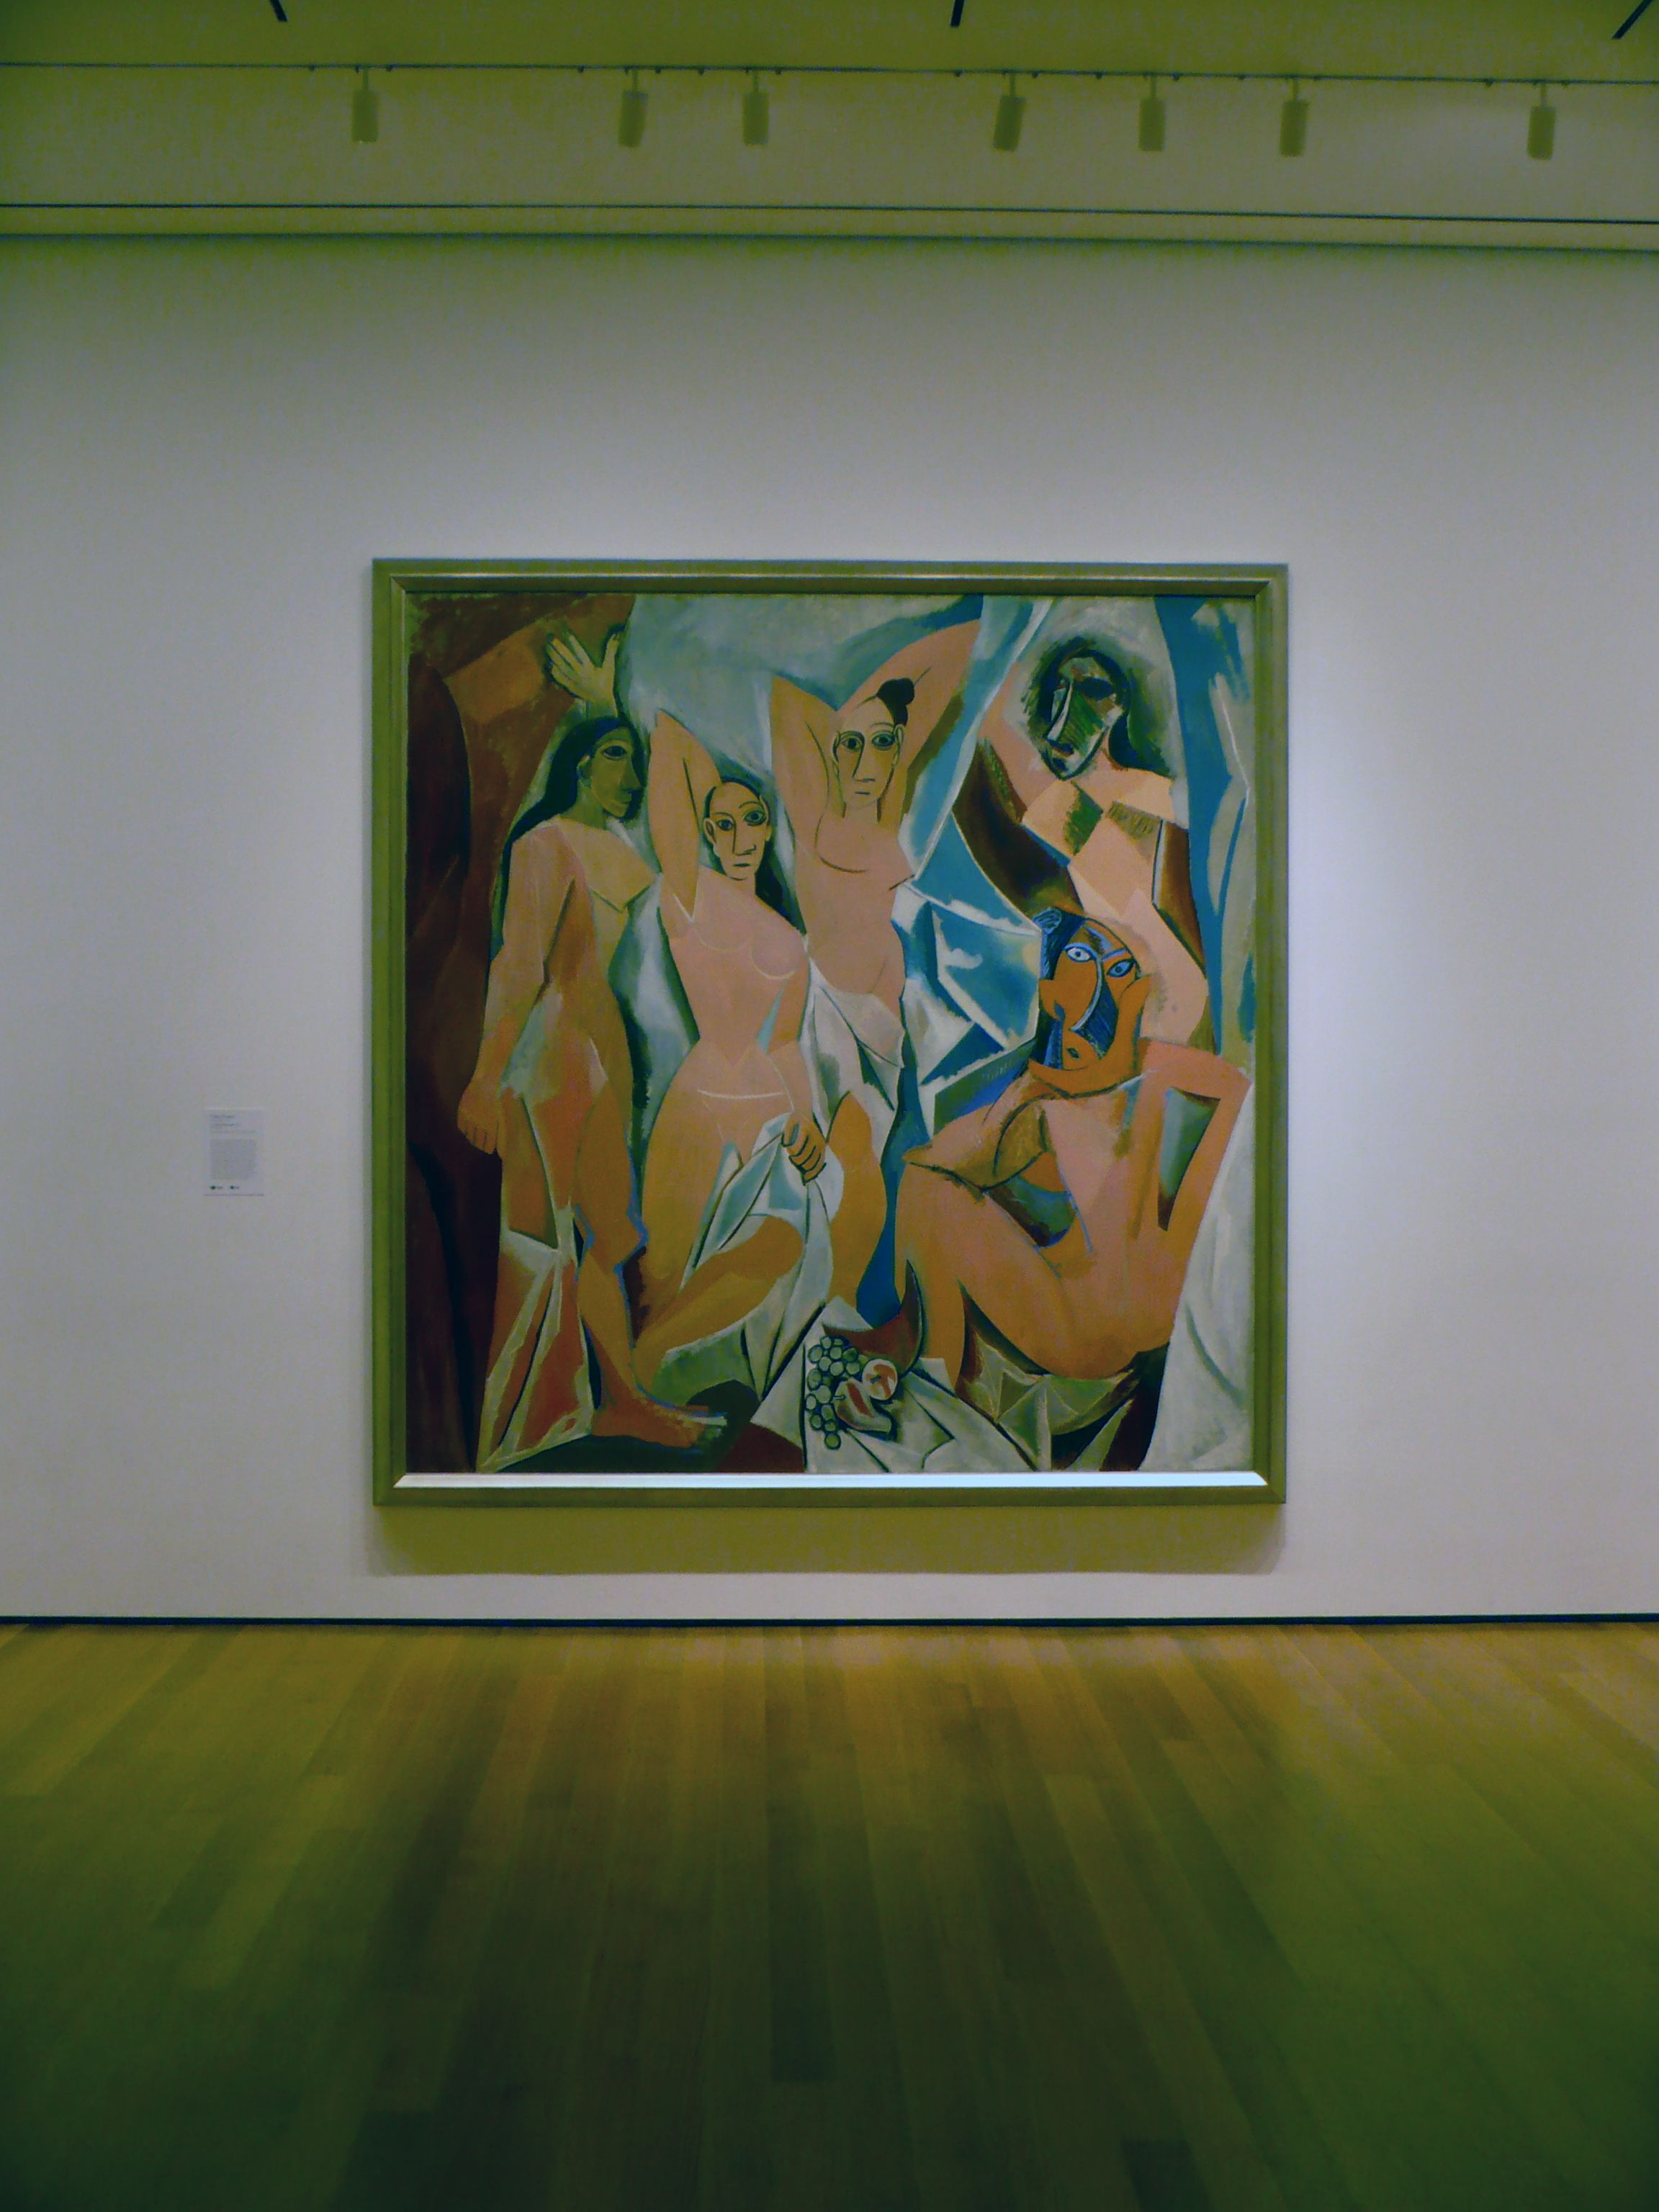 demoiselles d avignon essay Free essay example: discuss the process of female objectification through the  works of olympia [1863] by manet, les demoiselles d'avignon [1907] by pablo.